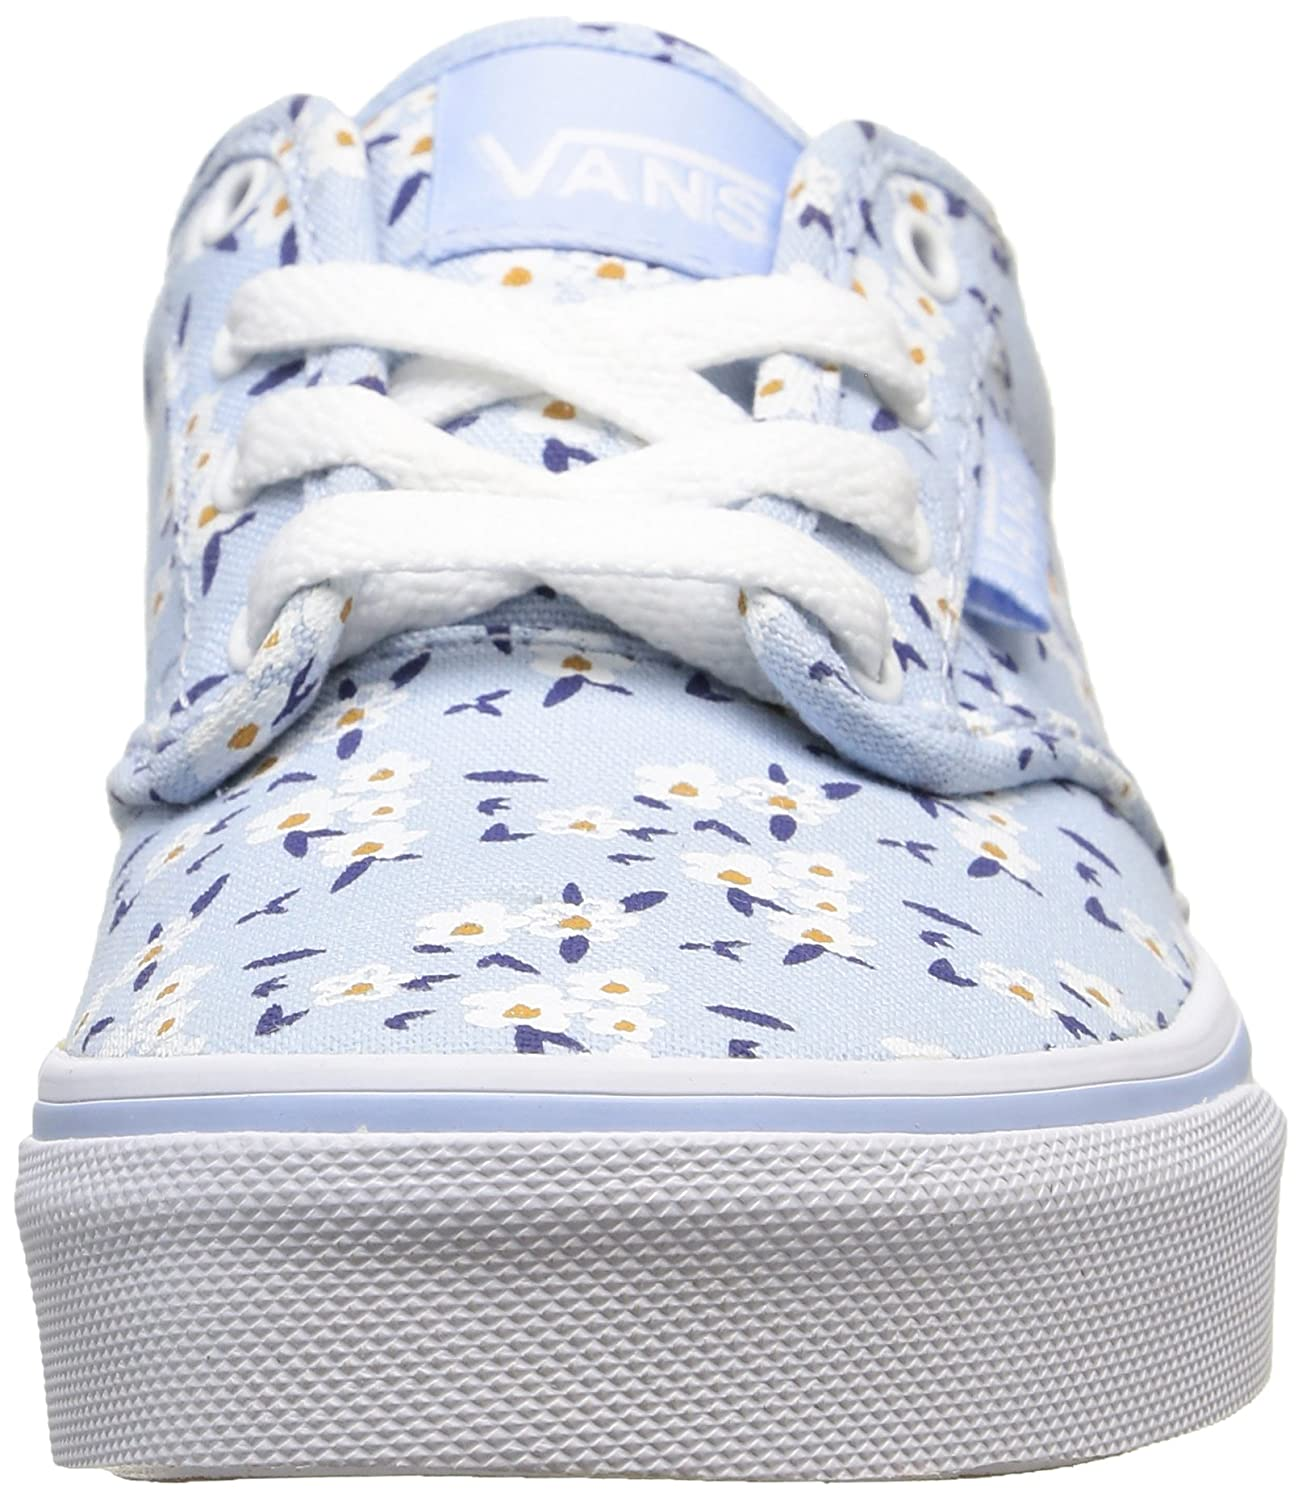 8b70370e3c Amazon.com  Vans Atwood Youth Sneakers - Floral Light Blue White  Clothing